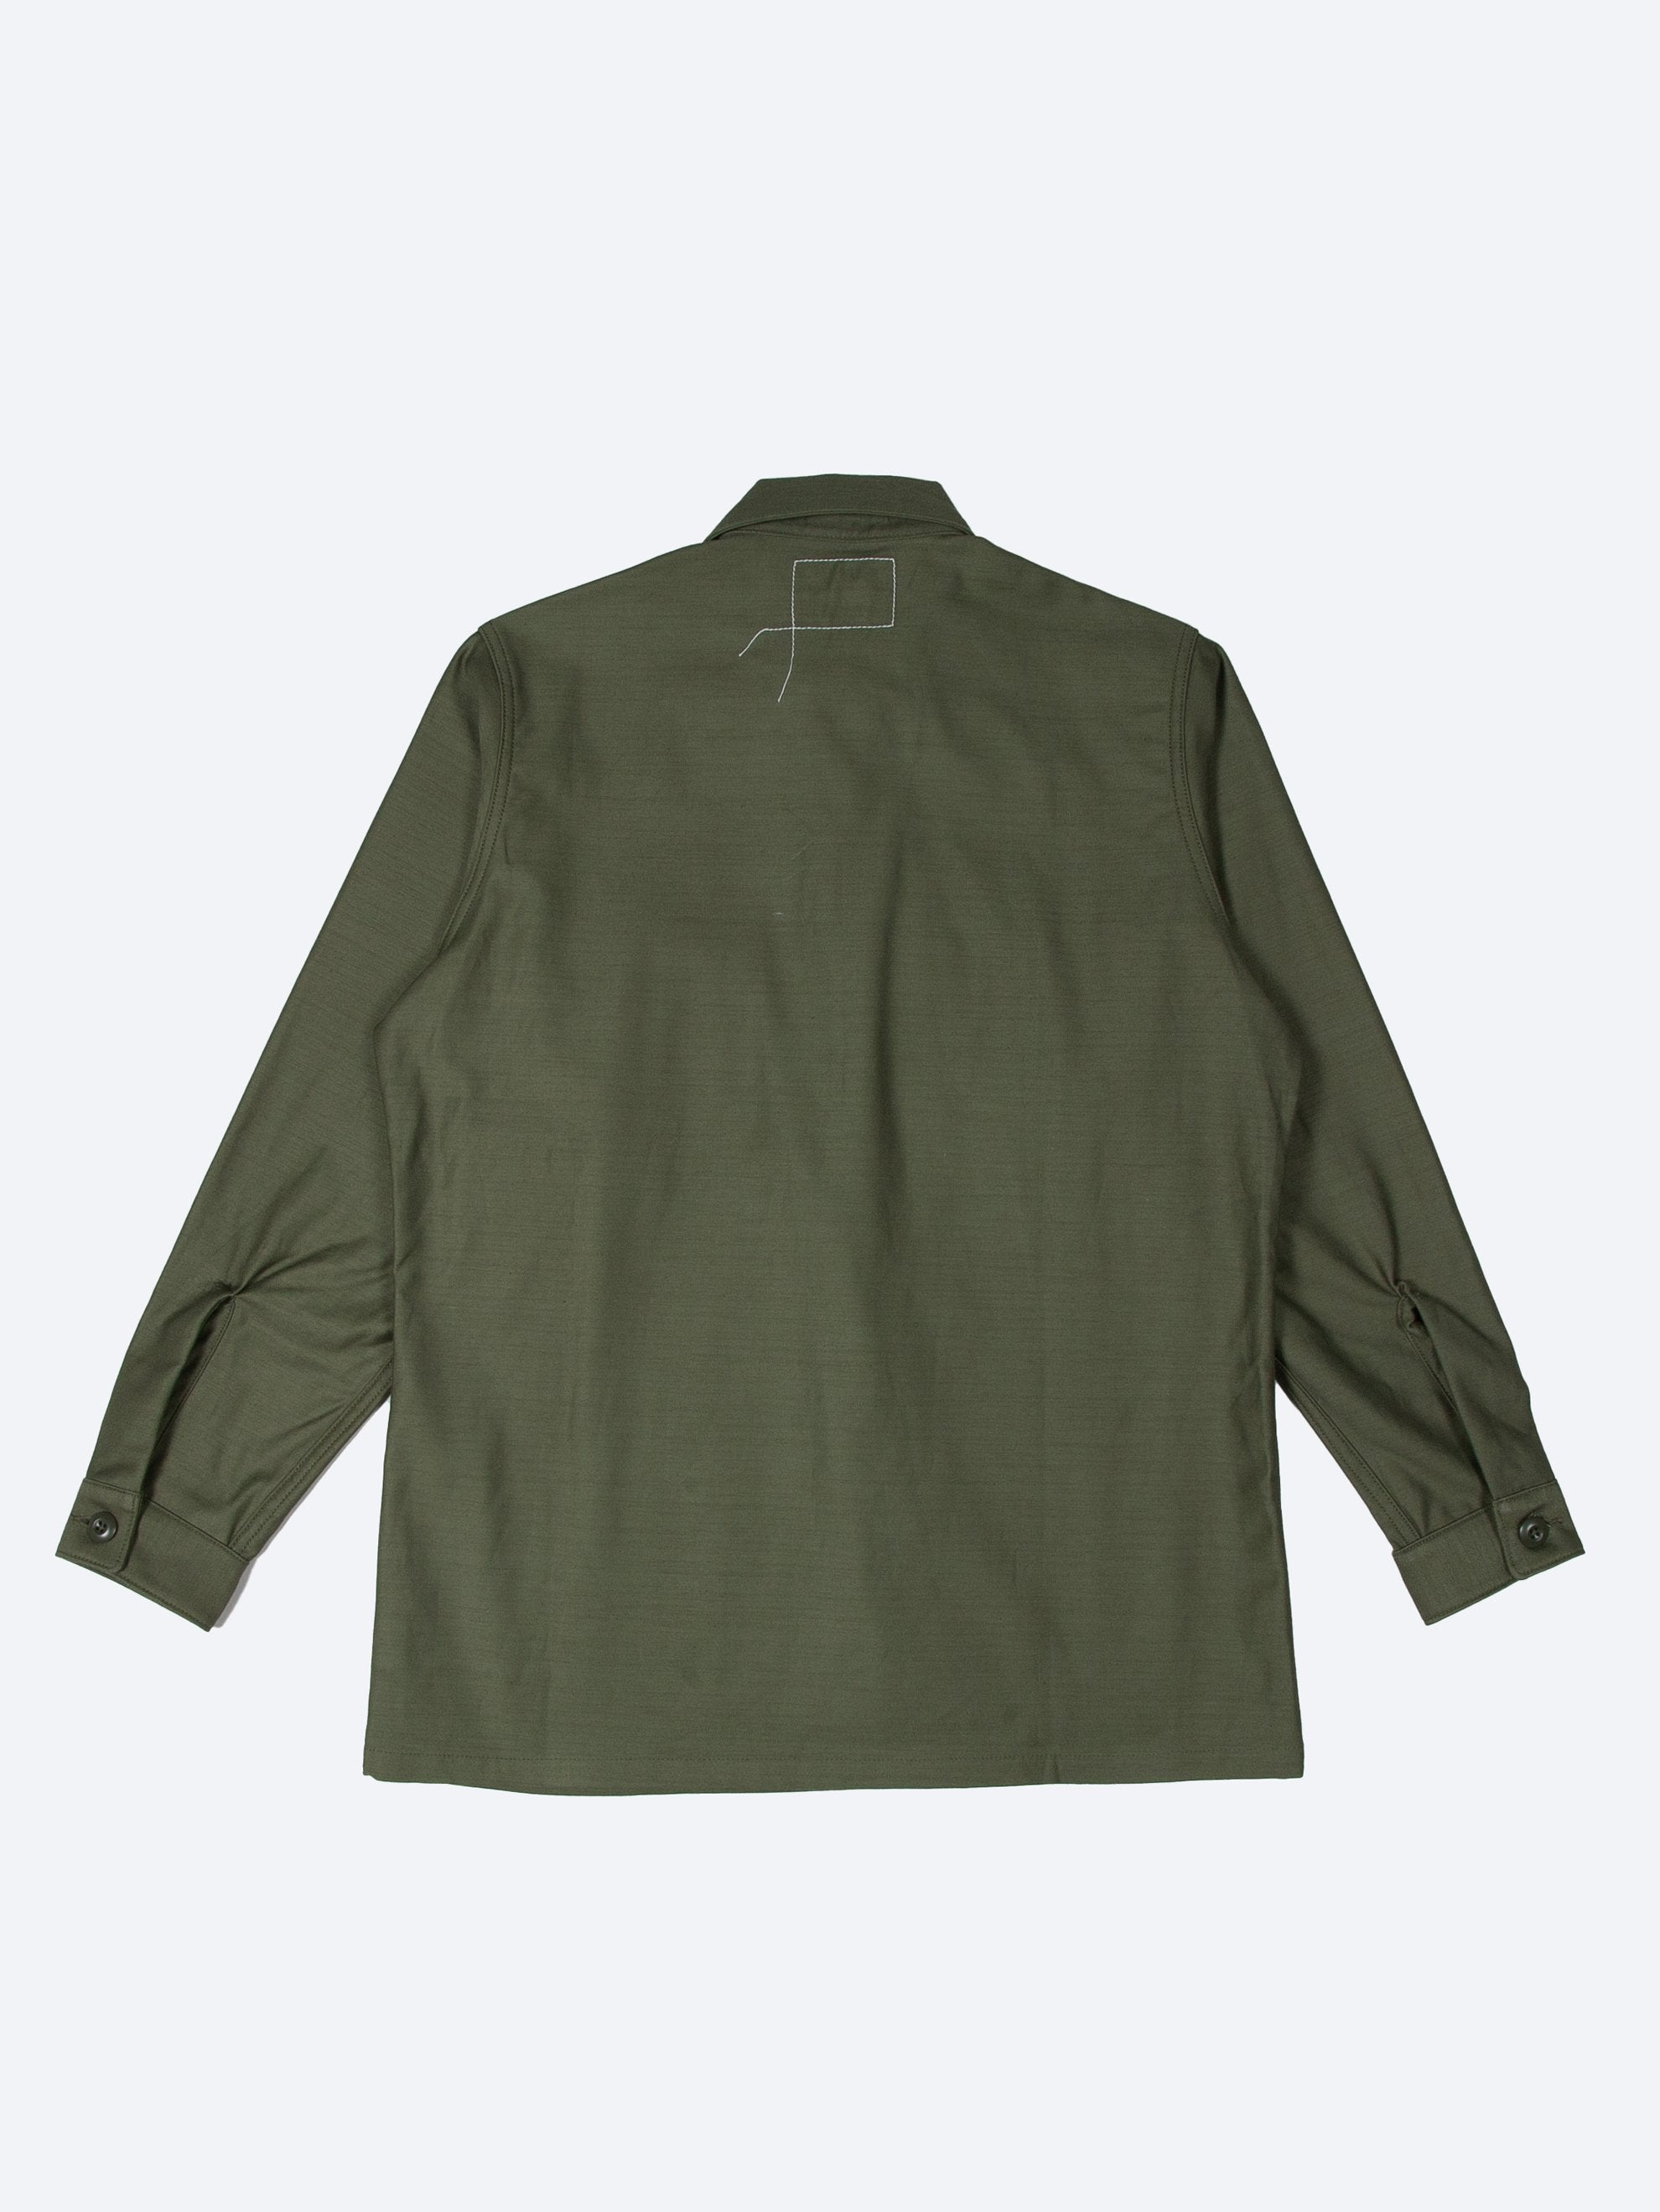 WMILL - LS 02 / Shirt Cotton Satin